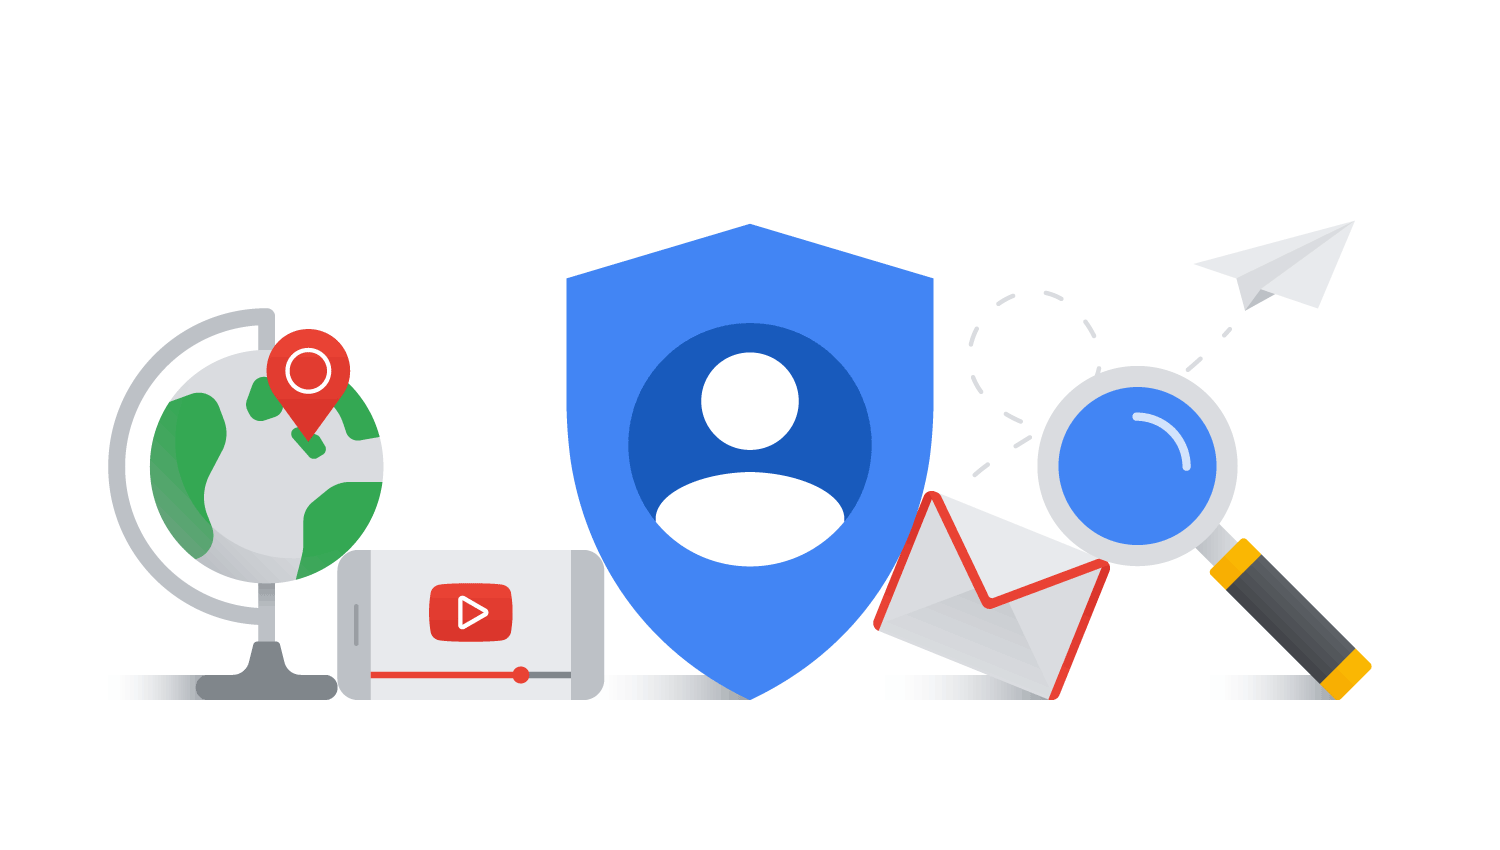 Globe, YouTube icon, shield, mail, and magnifying glass icons placed together